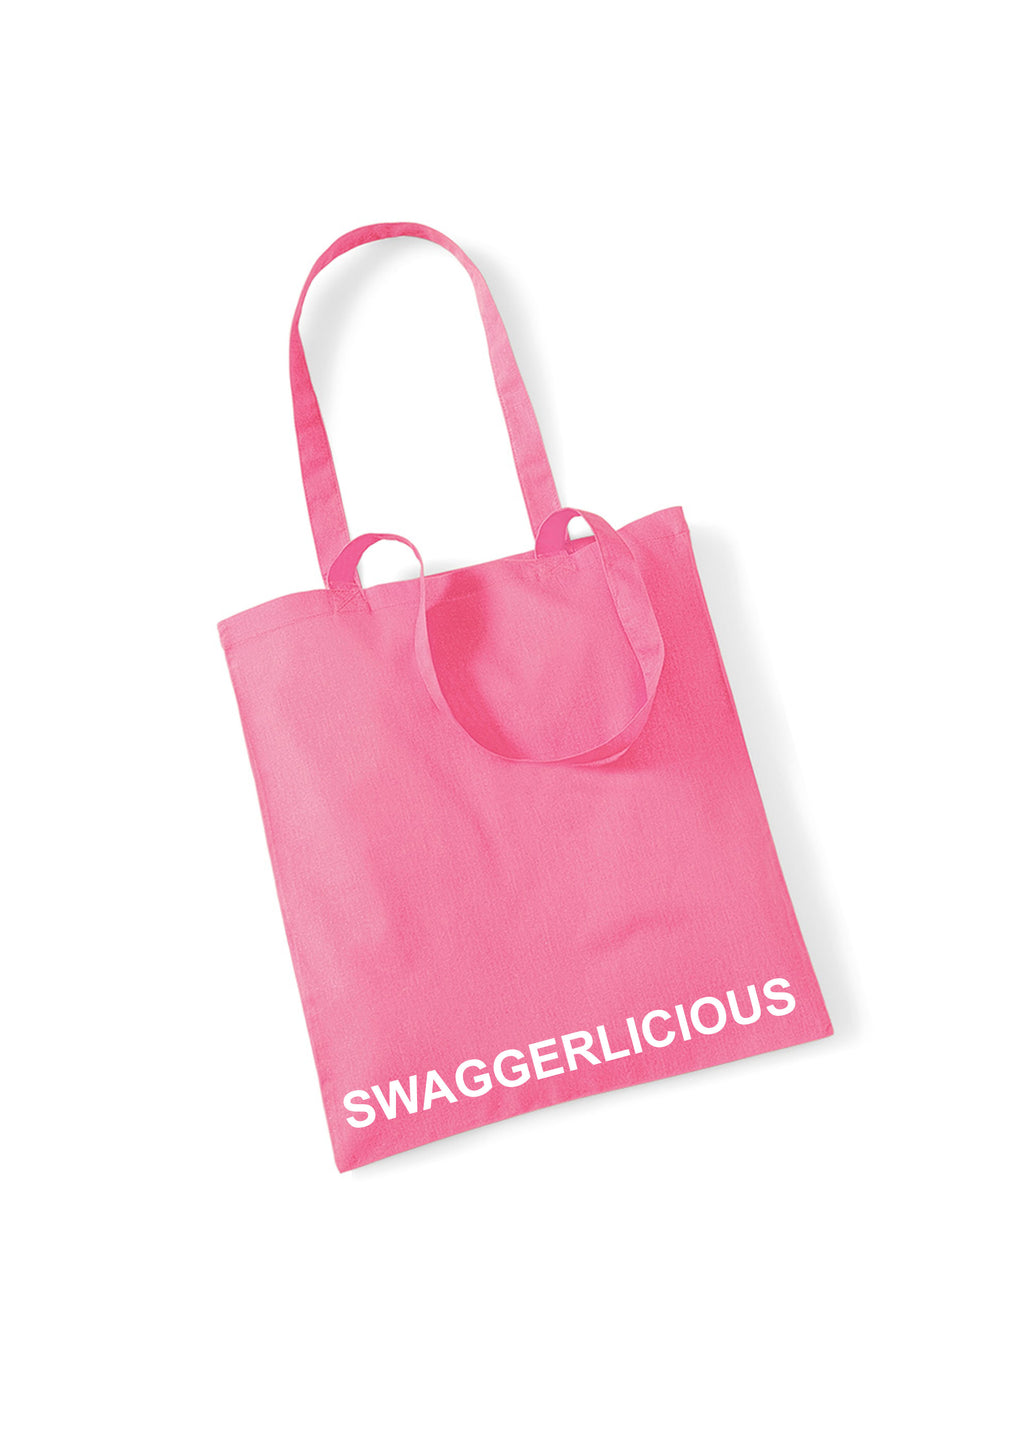 PINK SWAGGERLICIOUS TOTE BAG - swaggerlicious-clothing.com